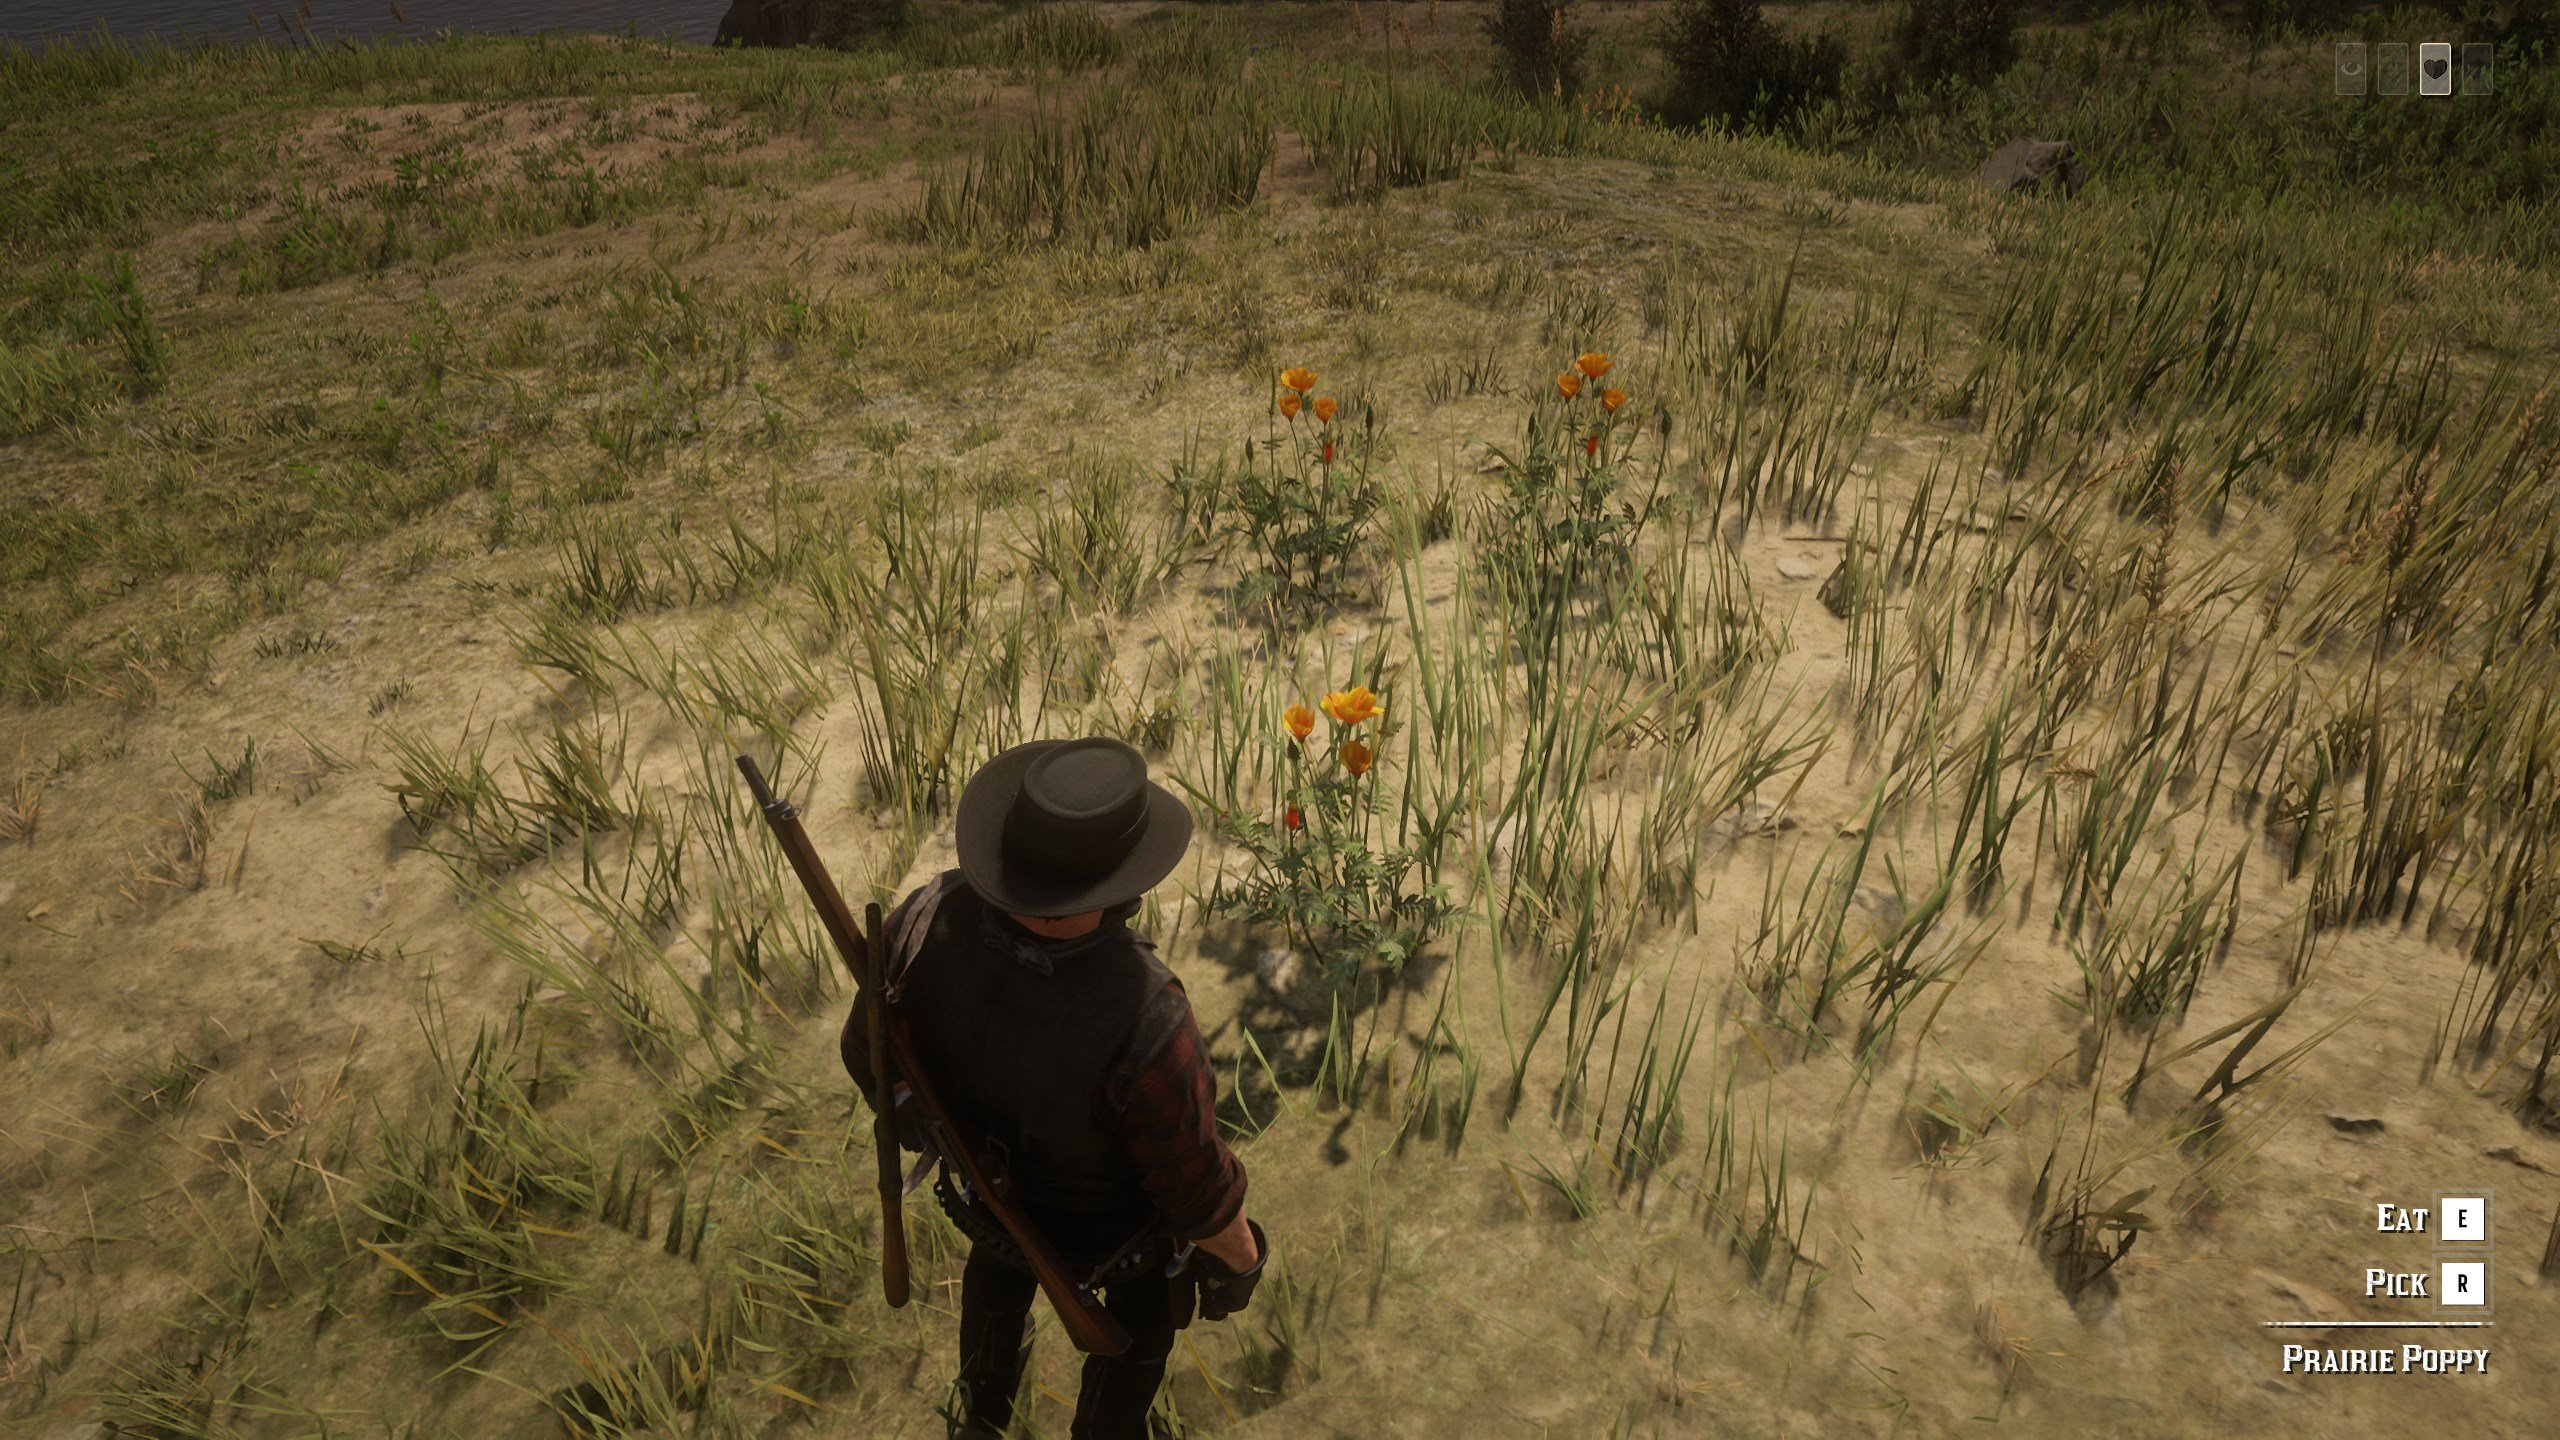 Prairie Poppy in Red Dead Redemption 2